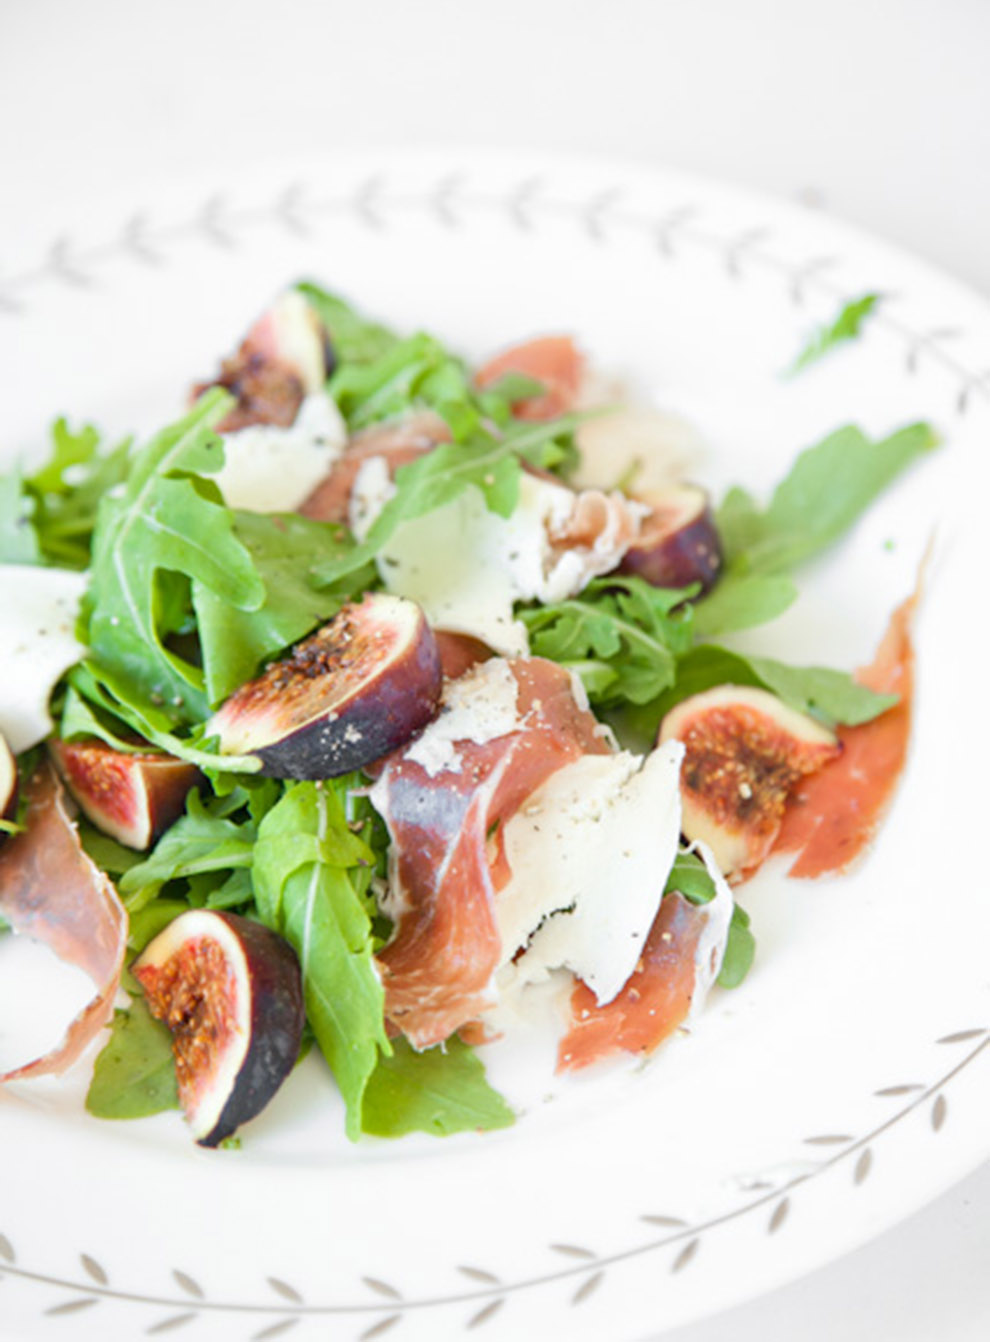 BiteDelite-Parma-ham-with-figs-salad-9578